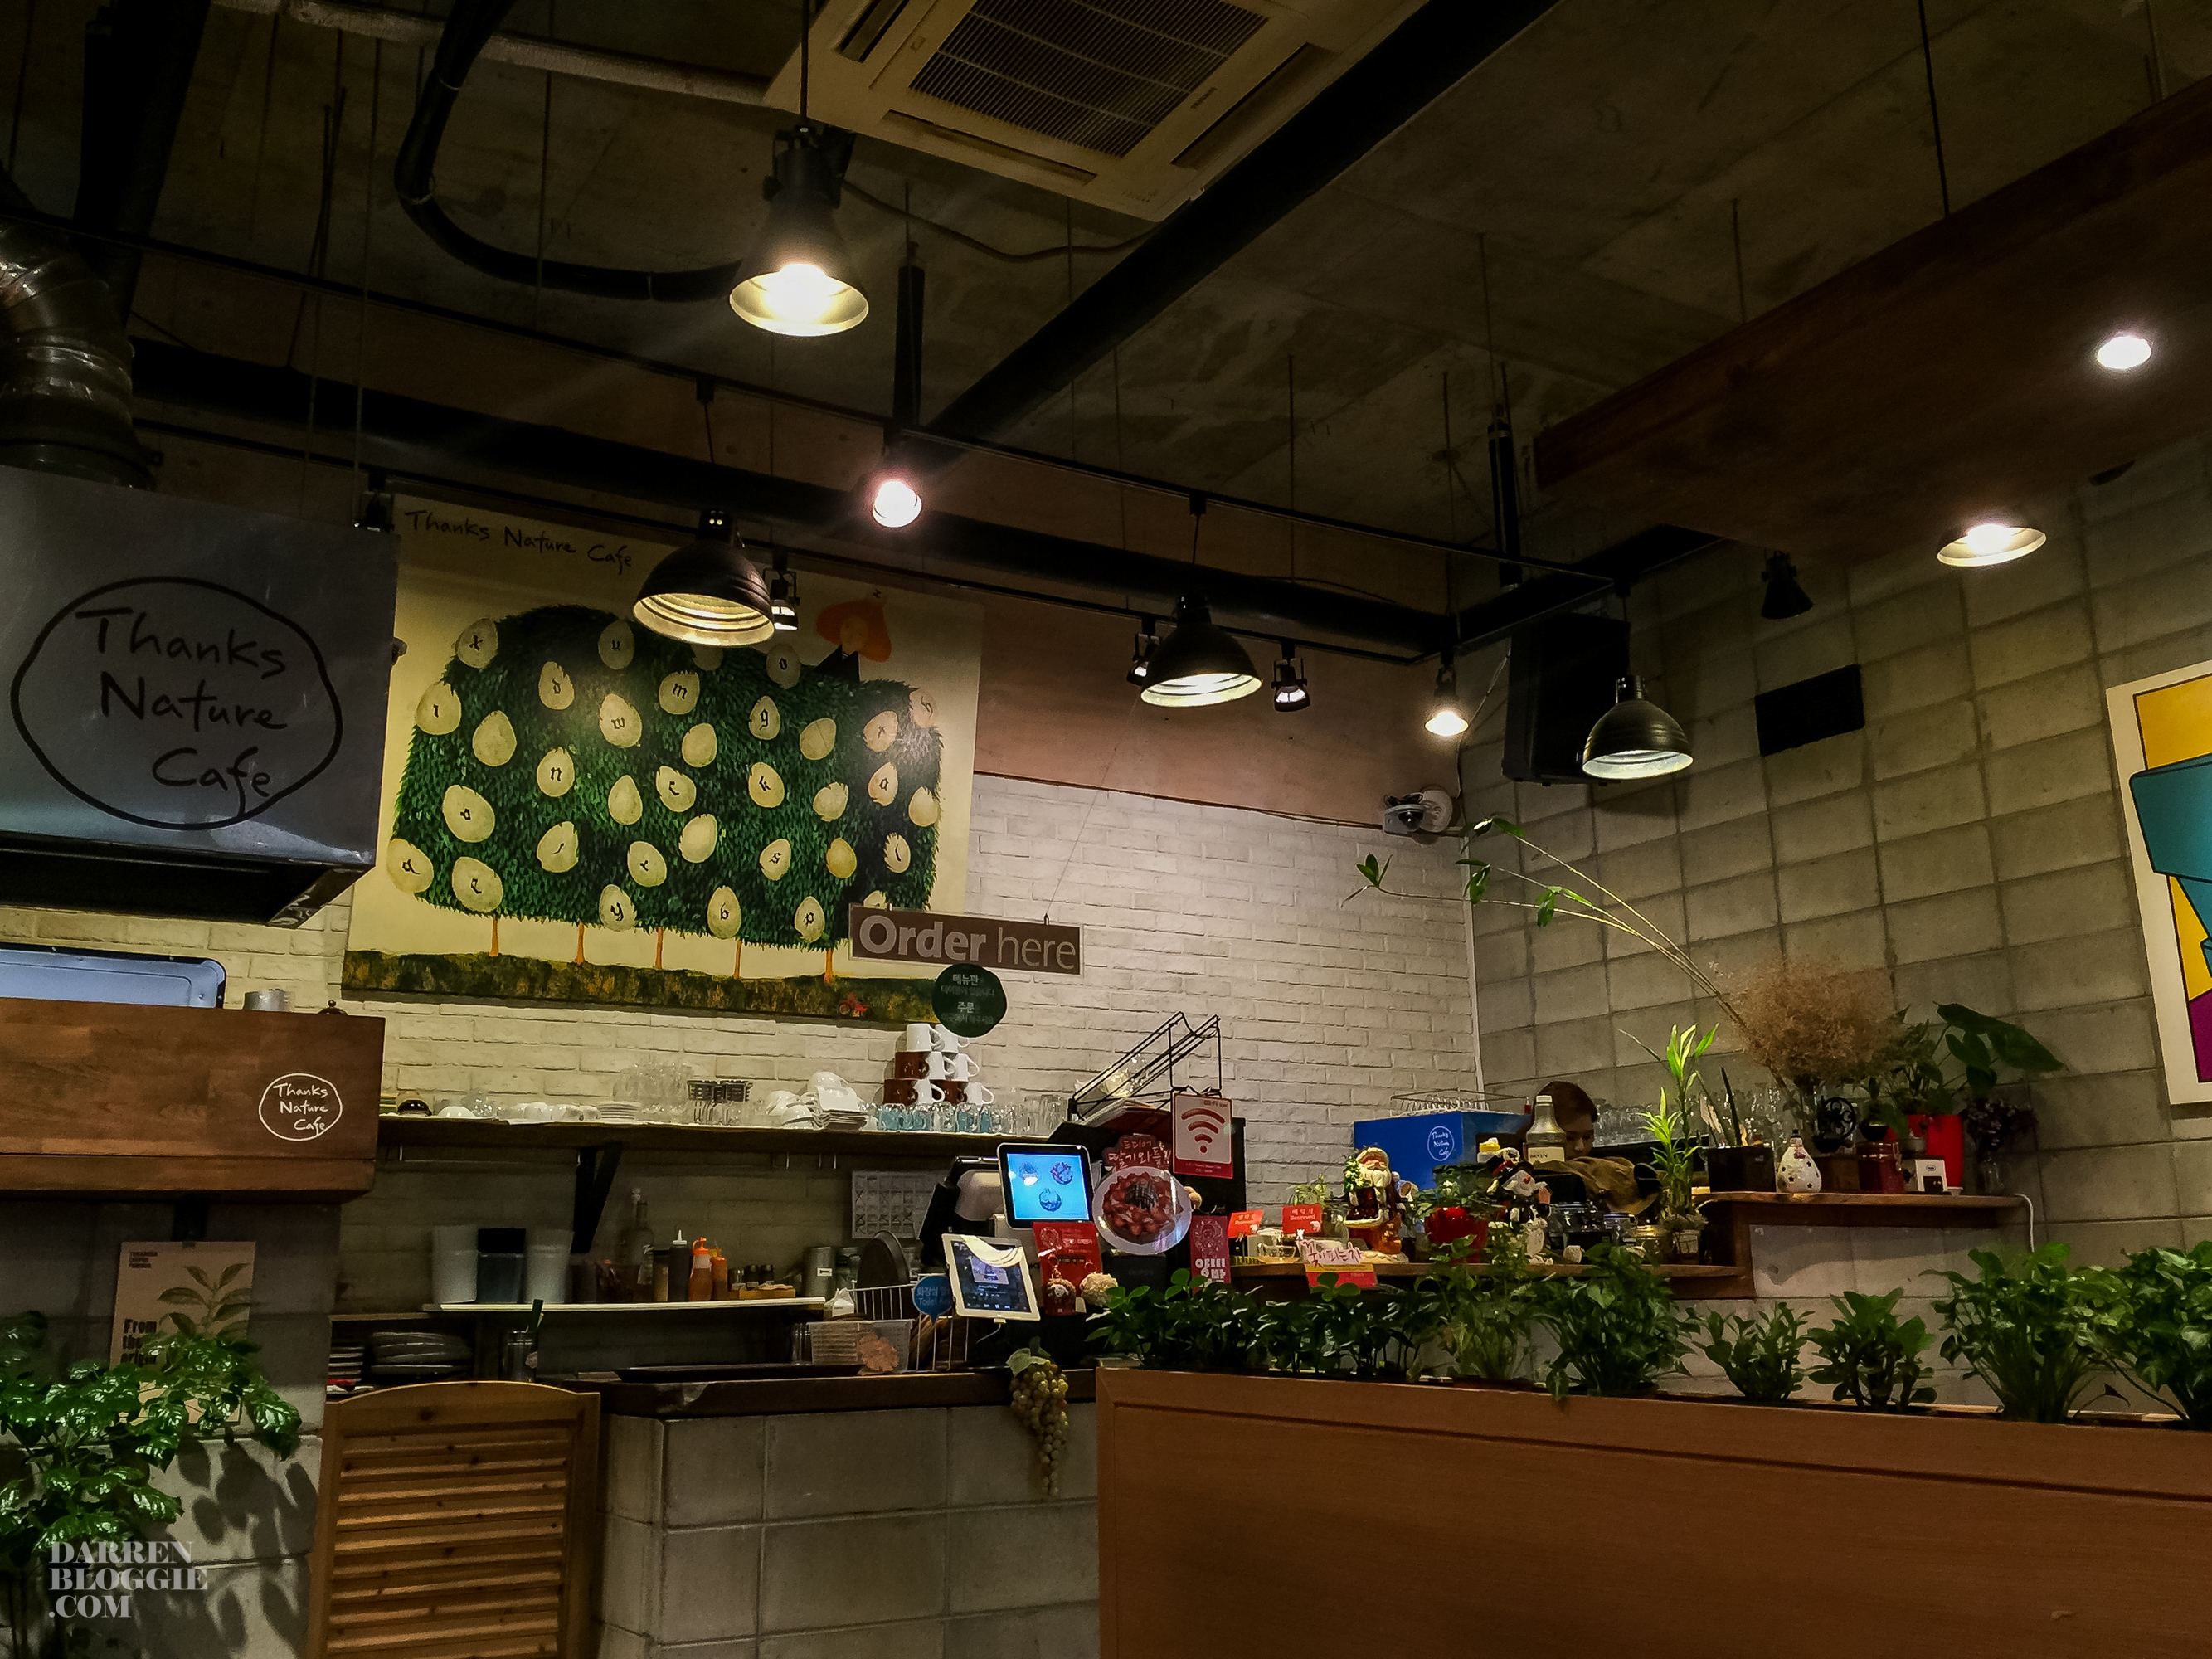 thanks-nature-cafe-sheep-hongdae-seoul-korea-6